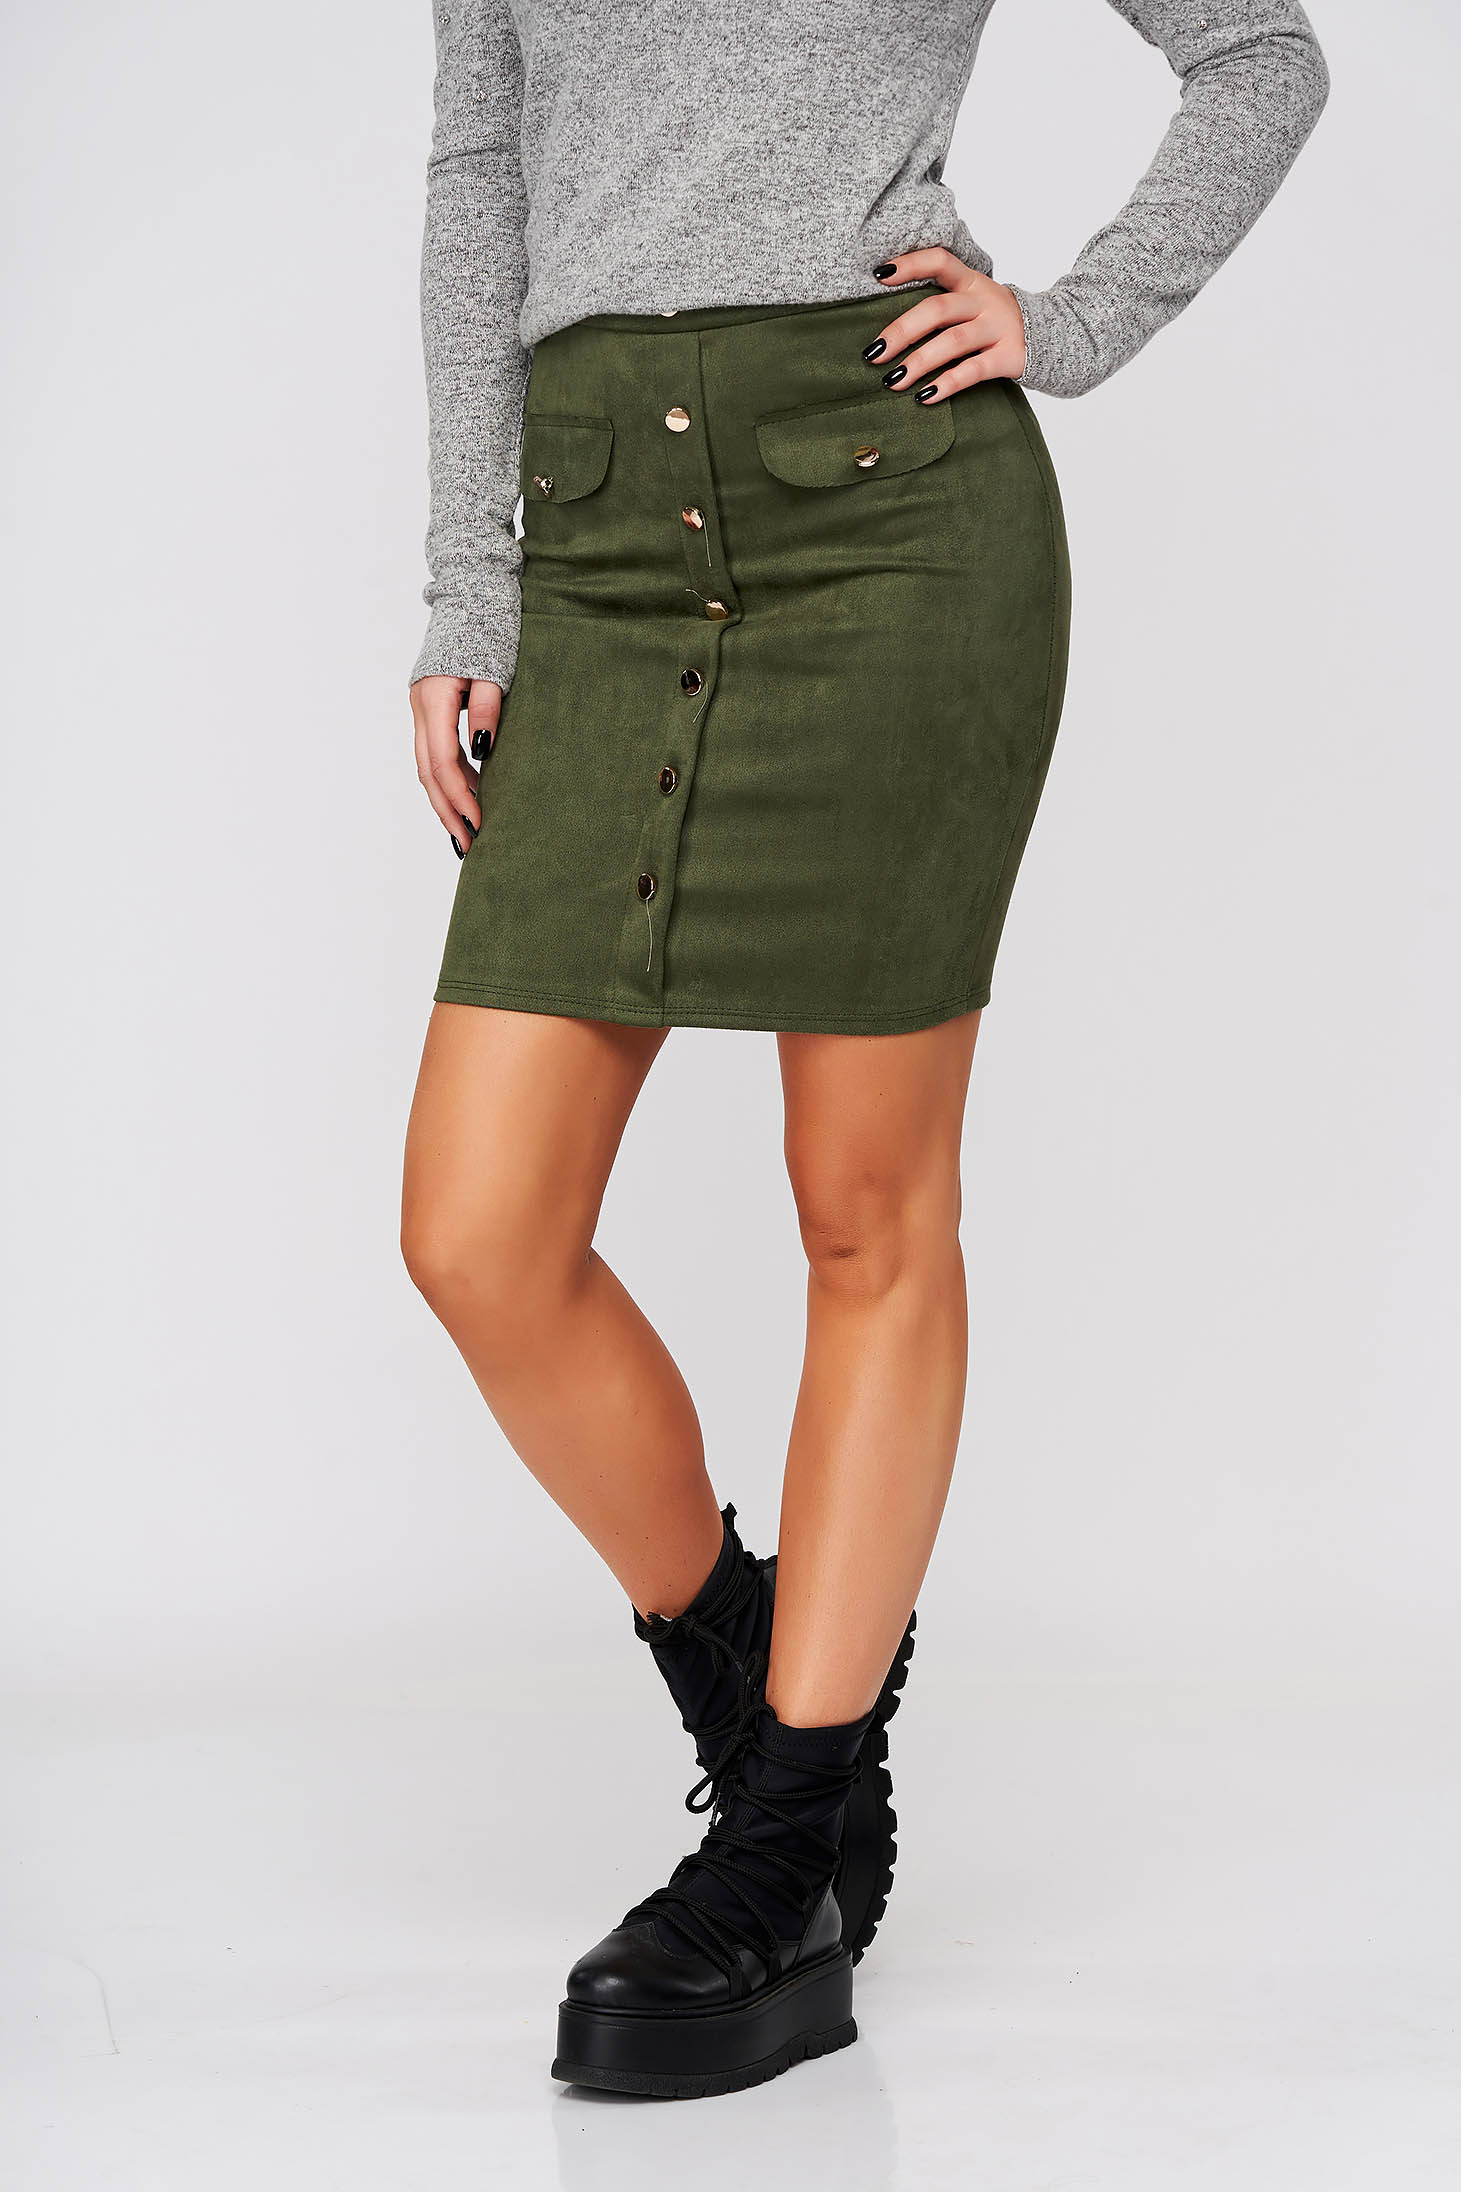 Darkgreen skirt casual short cut medium waist elastic waist with button accessories